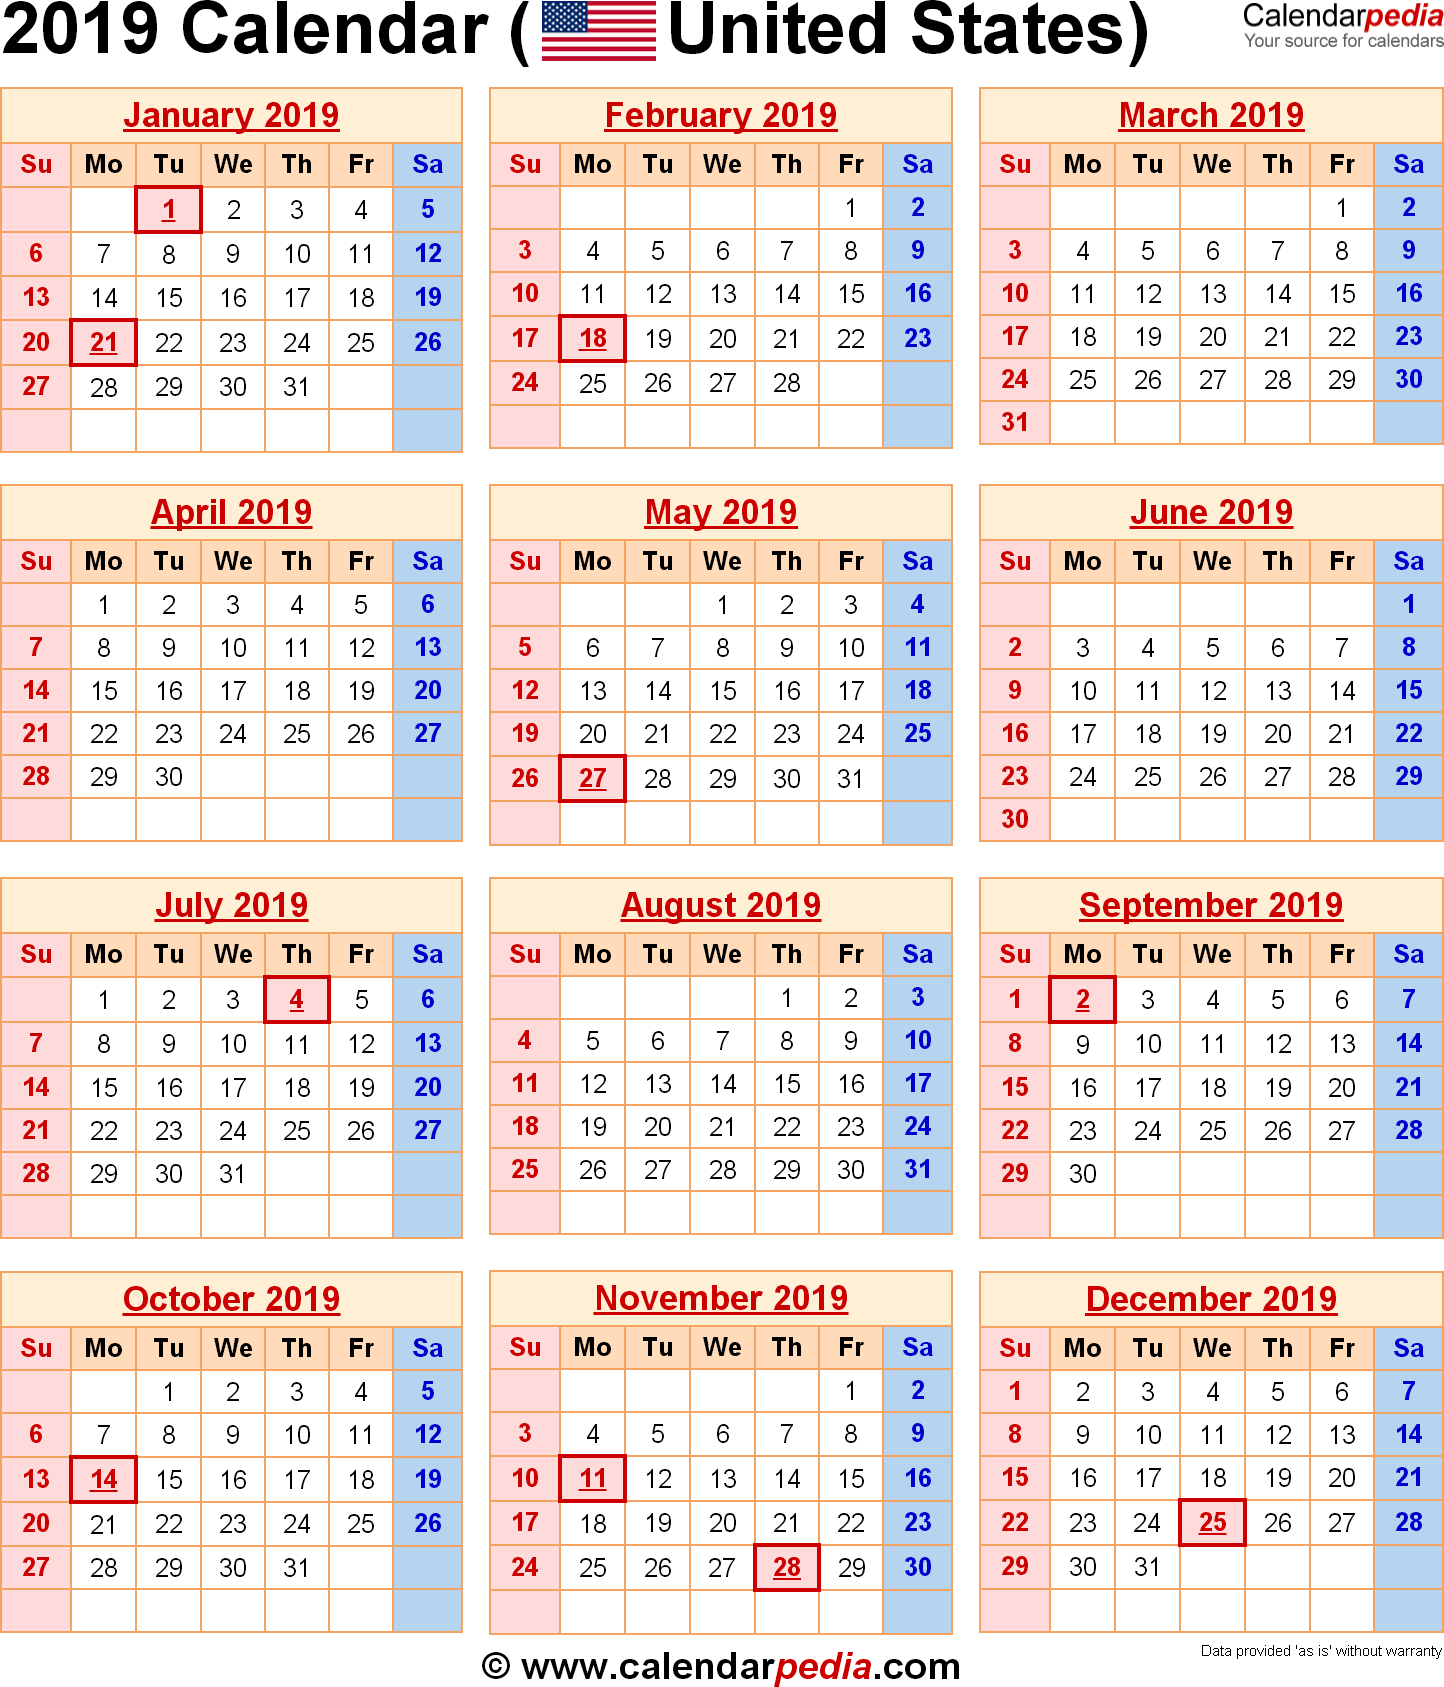 Year 2019 Calendar United States With Federal Holidays Excel PDF Word Templates